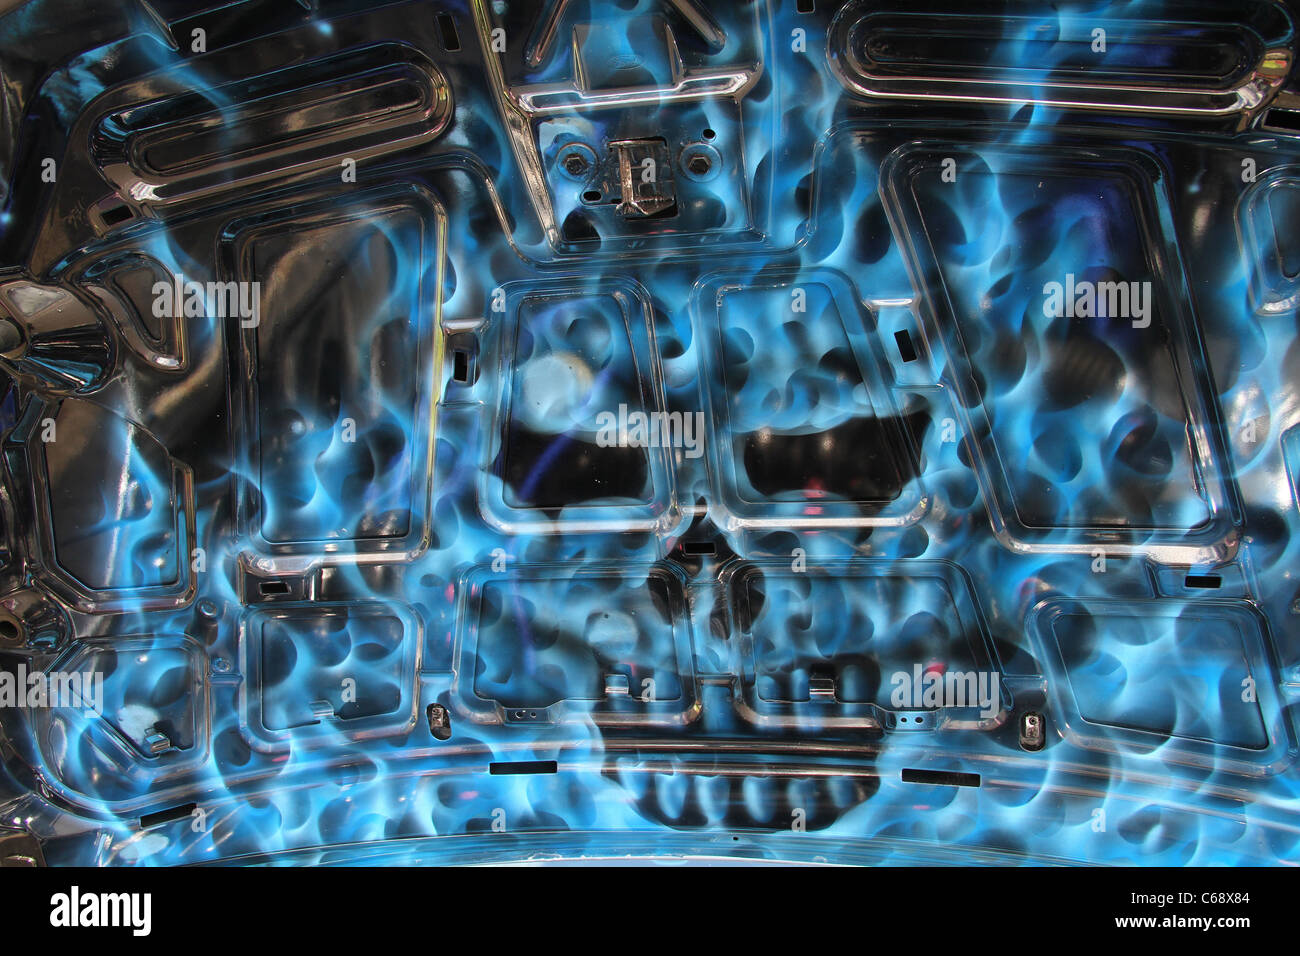 Skull fire stock photos skull fire stock images alamy human skull airbrushed image in blue fire under car bonnet at show stock image buycottarizona